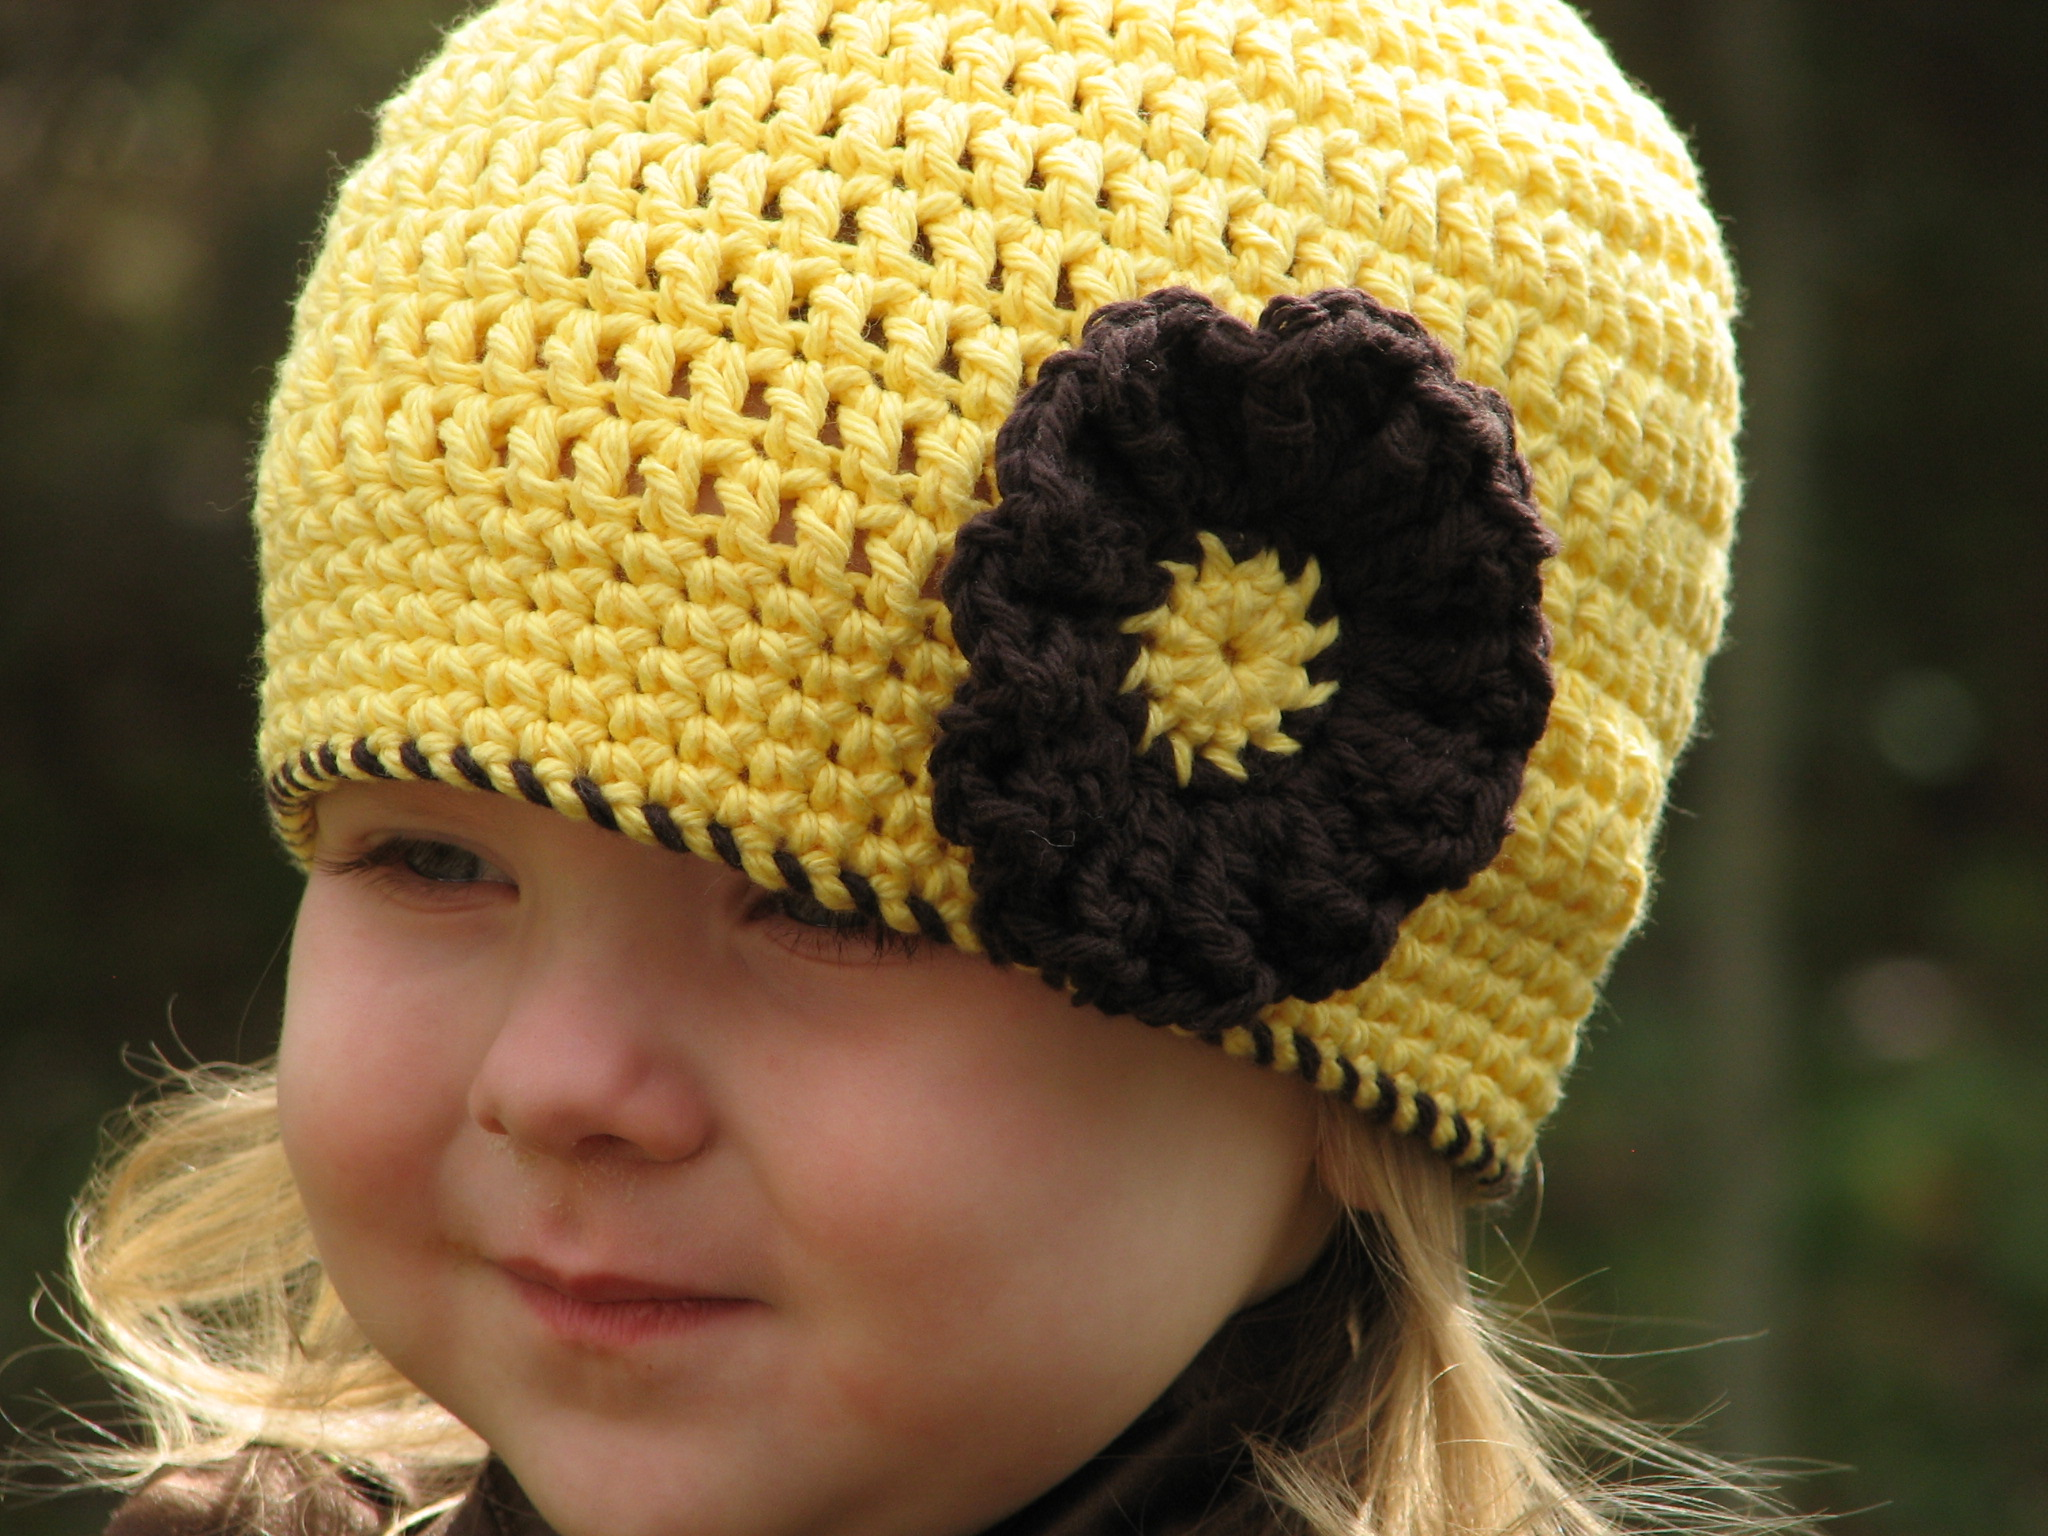 Free Patterns Crochet Beanies : Sunshine Beanie Crochet Pattern Giveaway - Ambassador ...